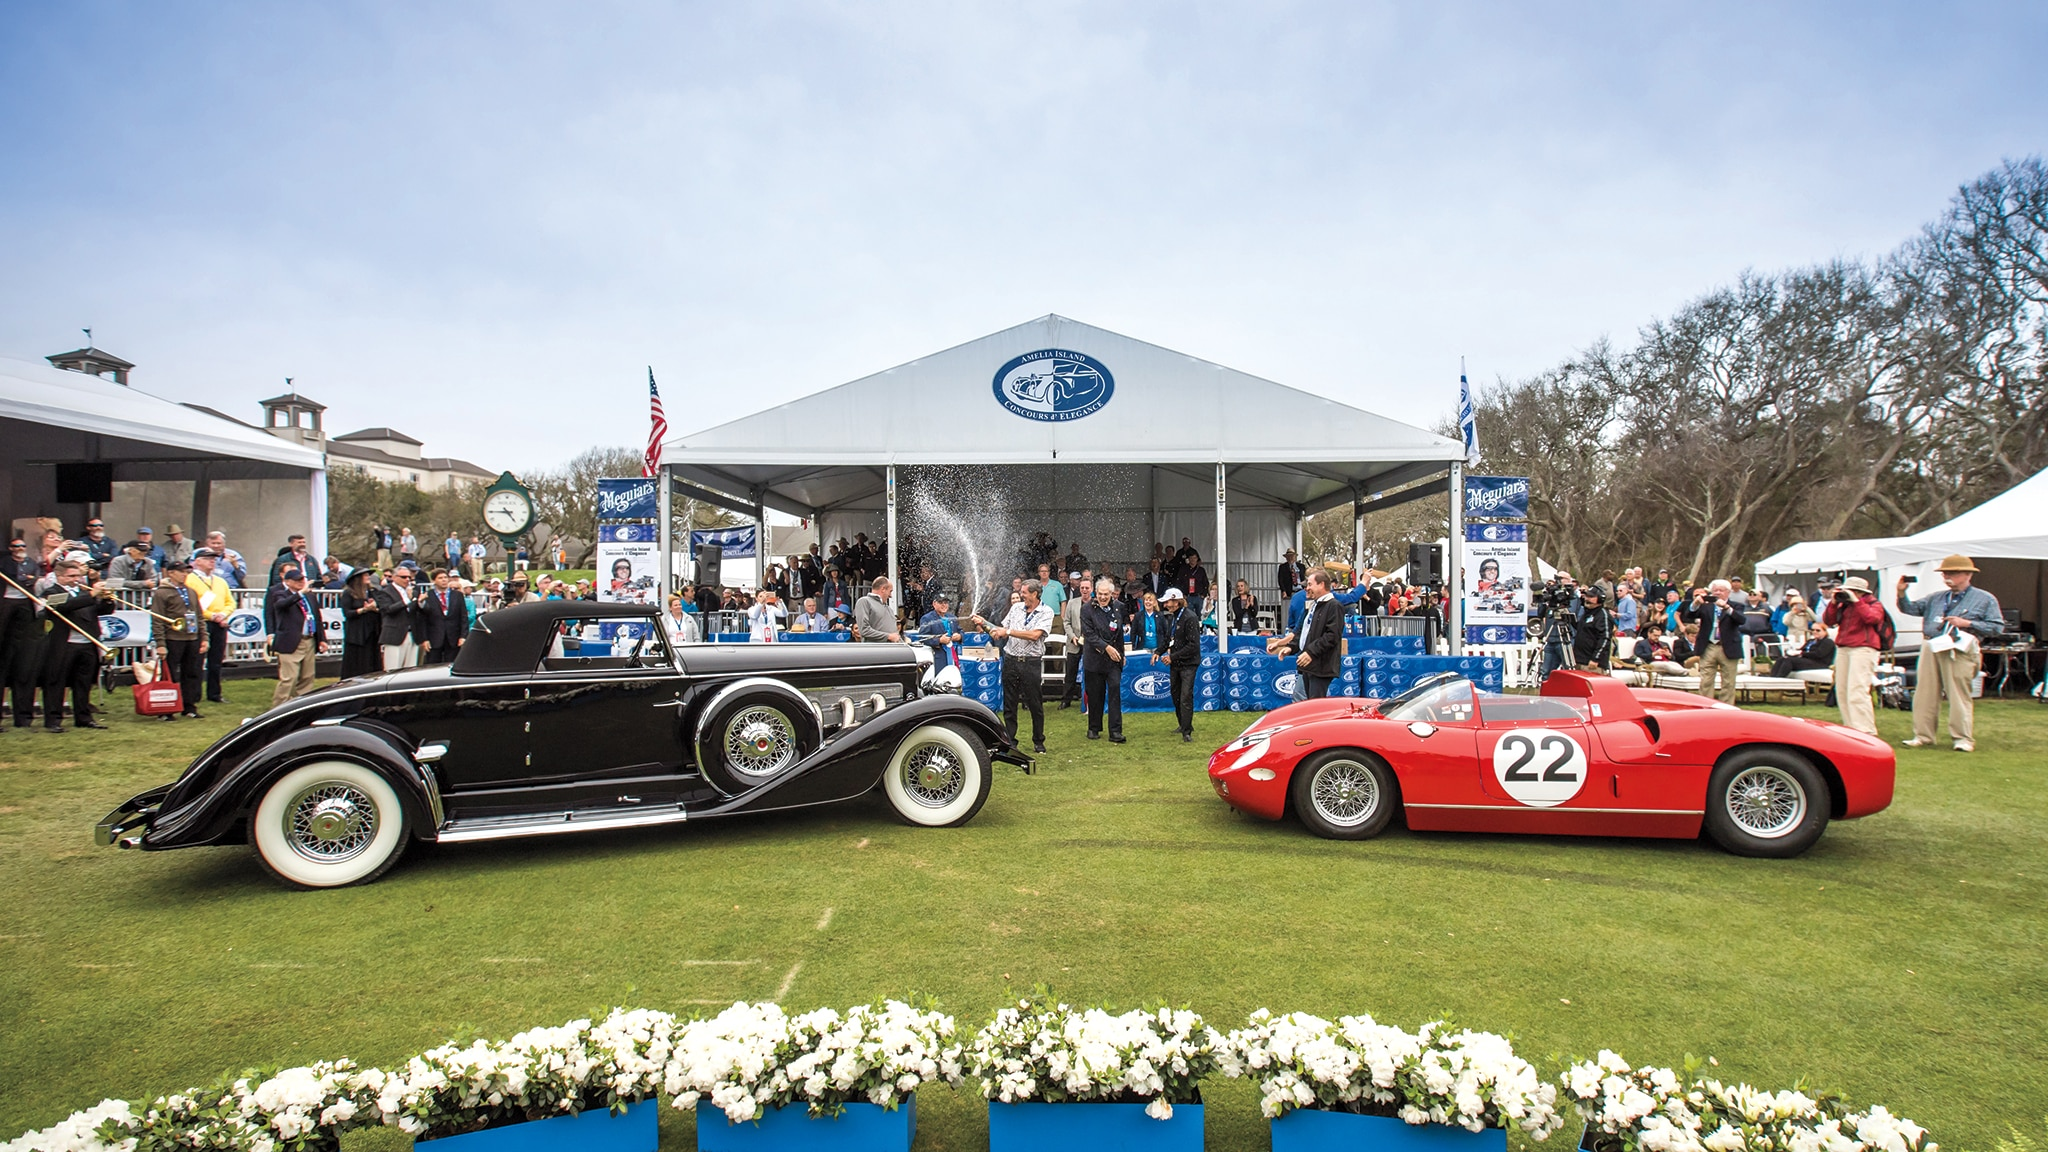 8116247816377 The 2019 Amelia Island Concours Is Going to Be Epic